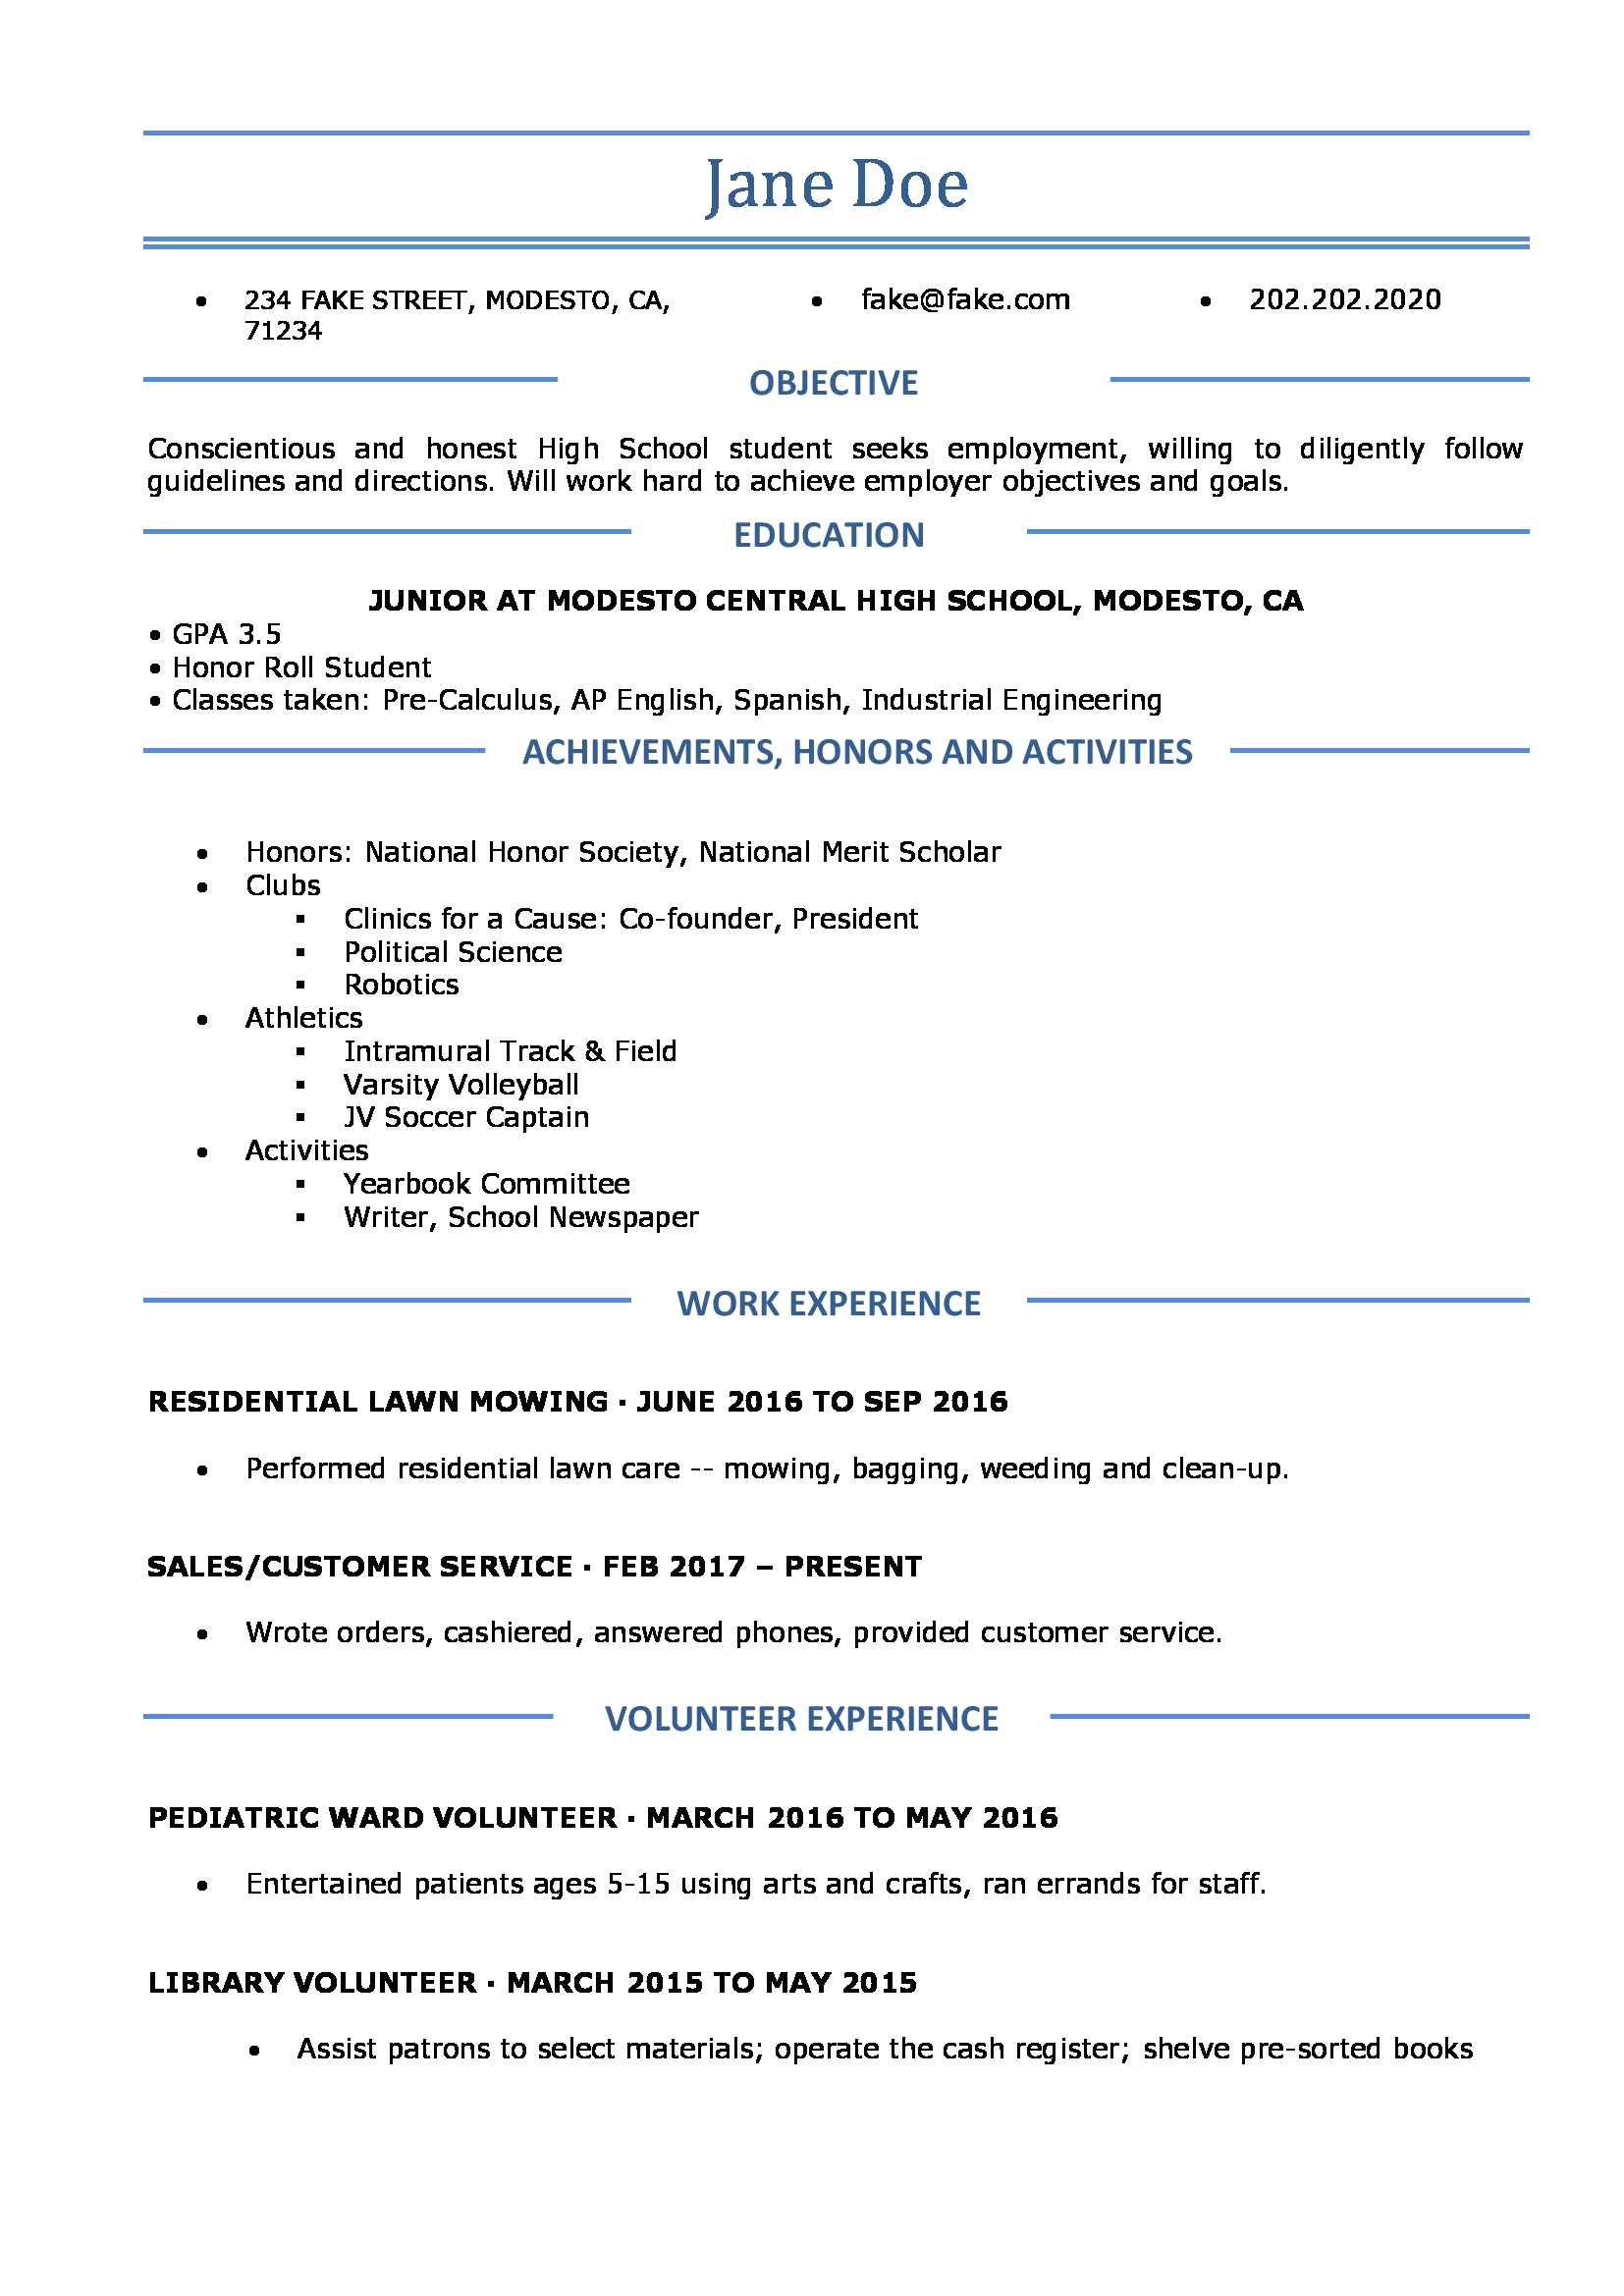 resume template for a high school student with no work experience